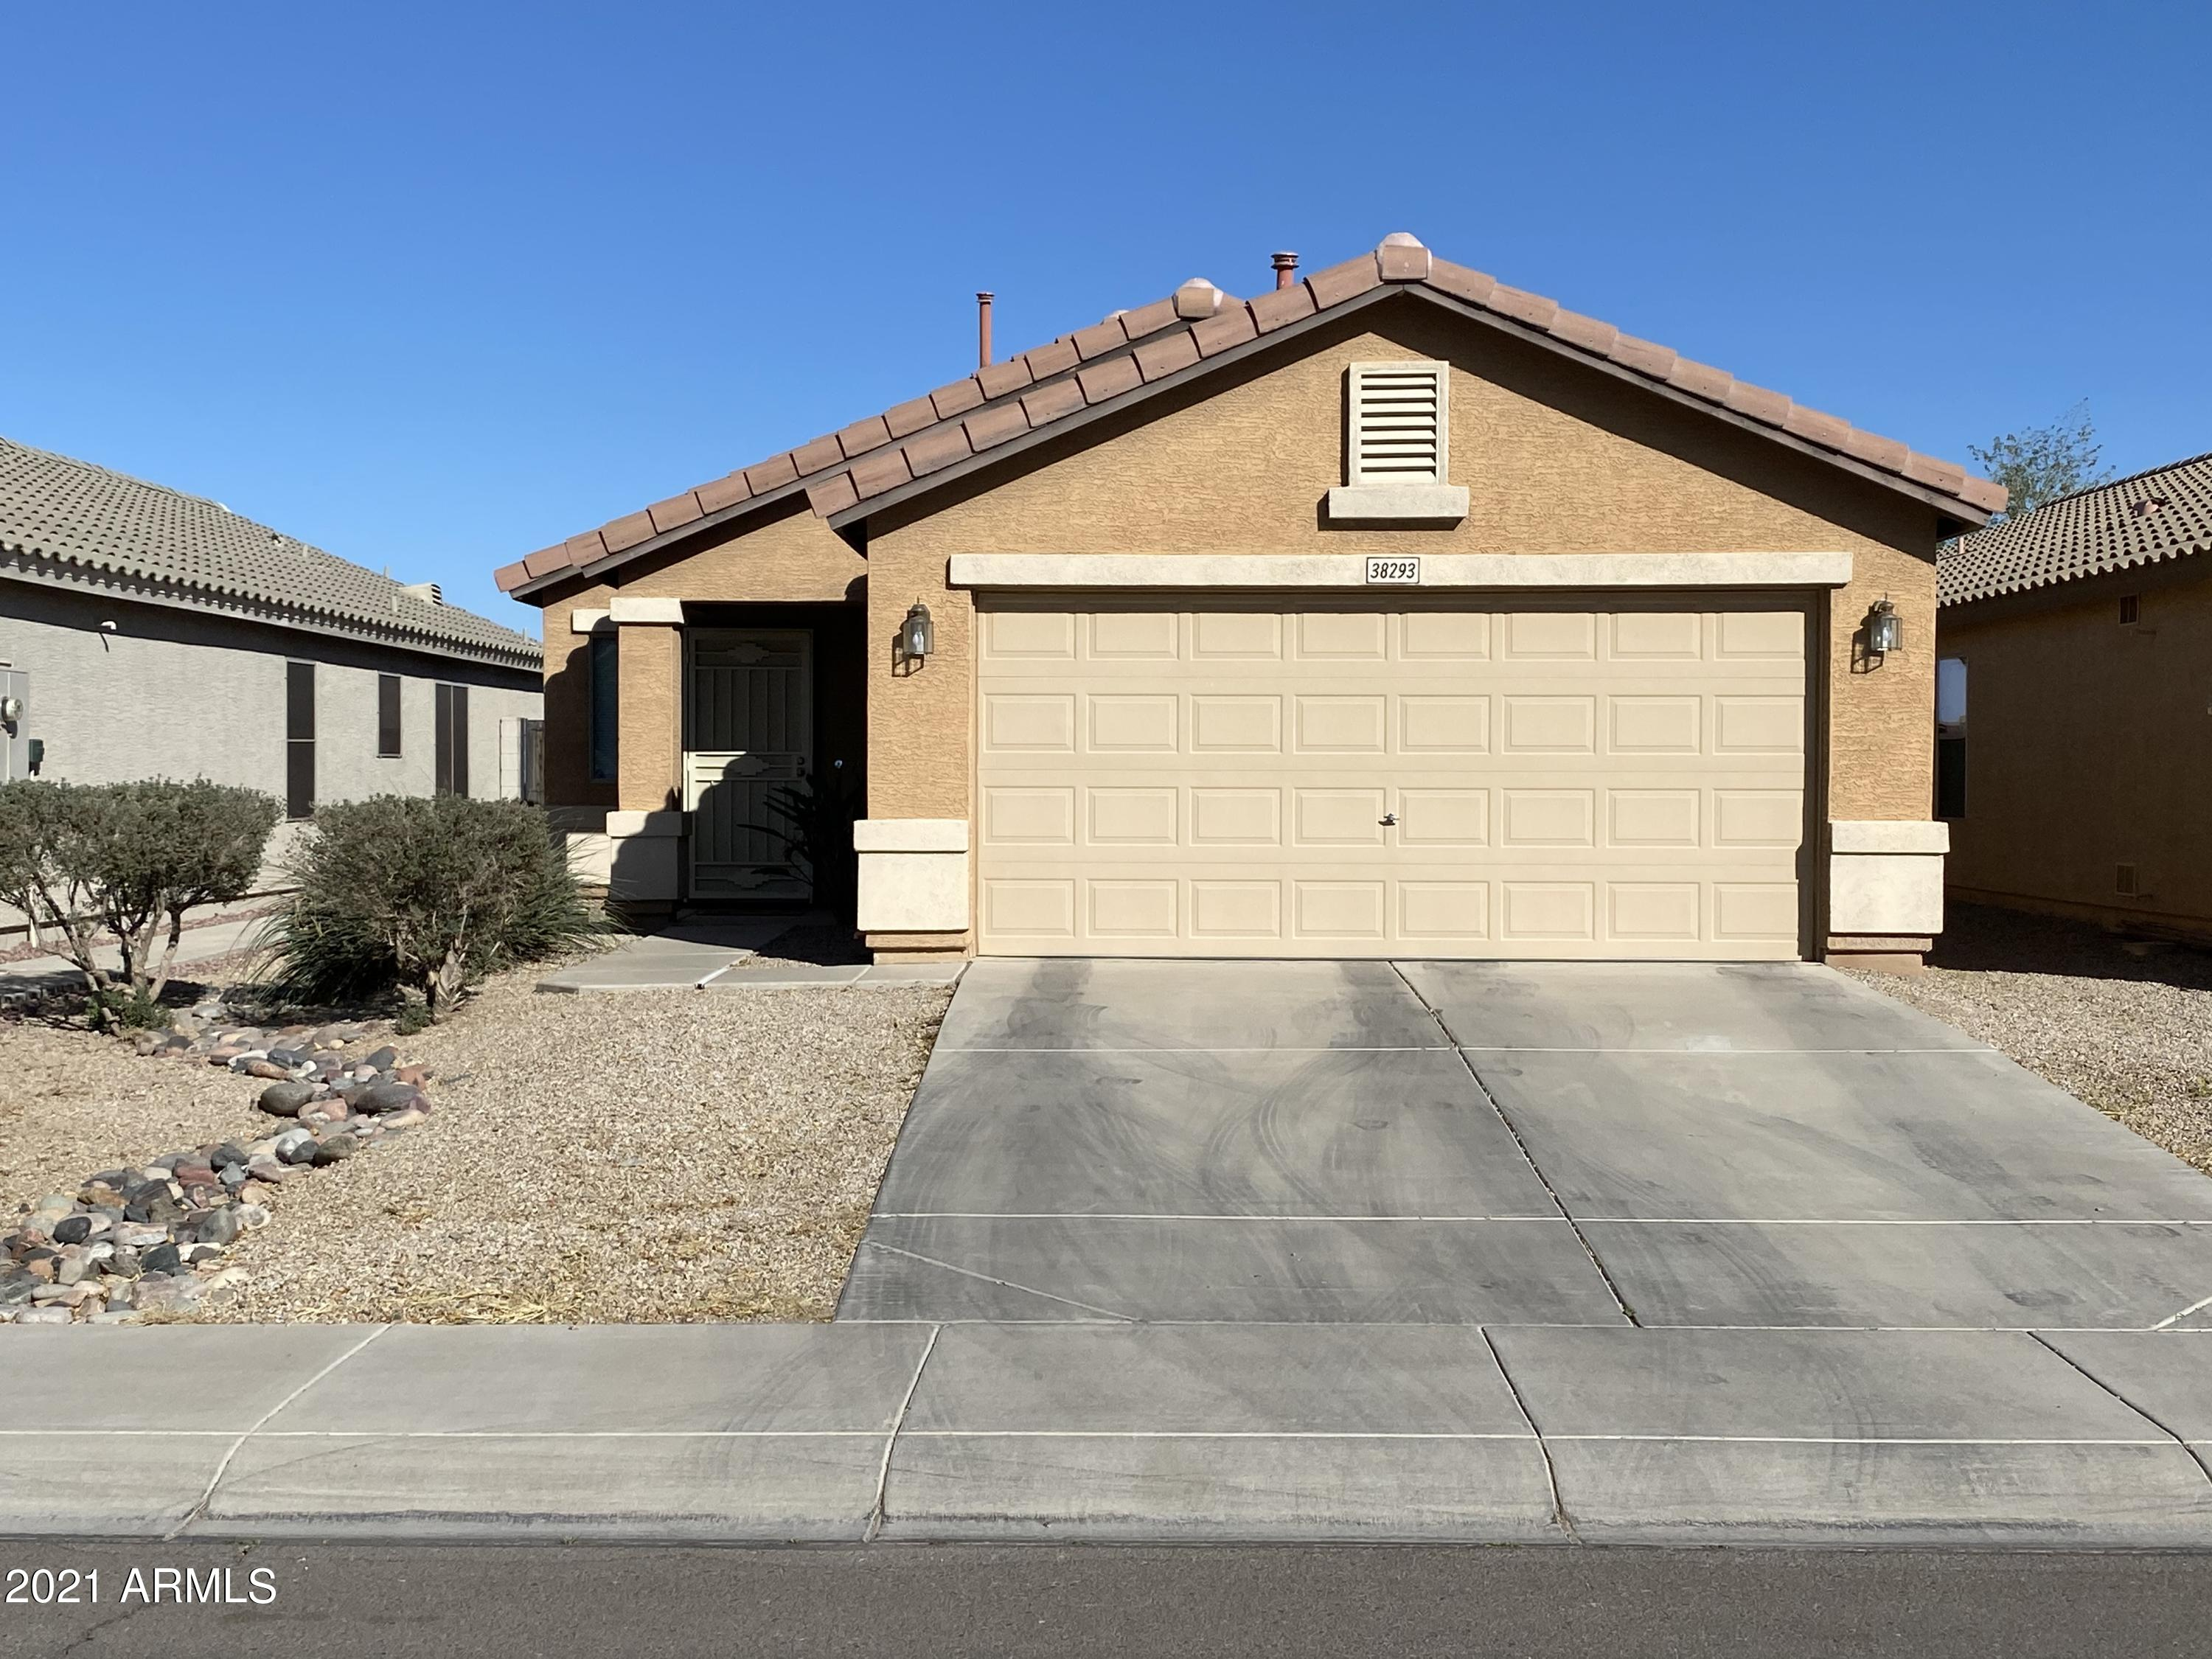 38293 N JONATHAN Street, San Tan Valley AZ 85140